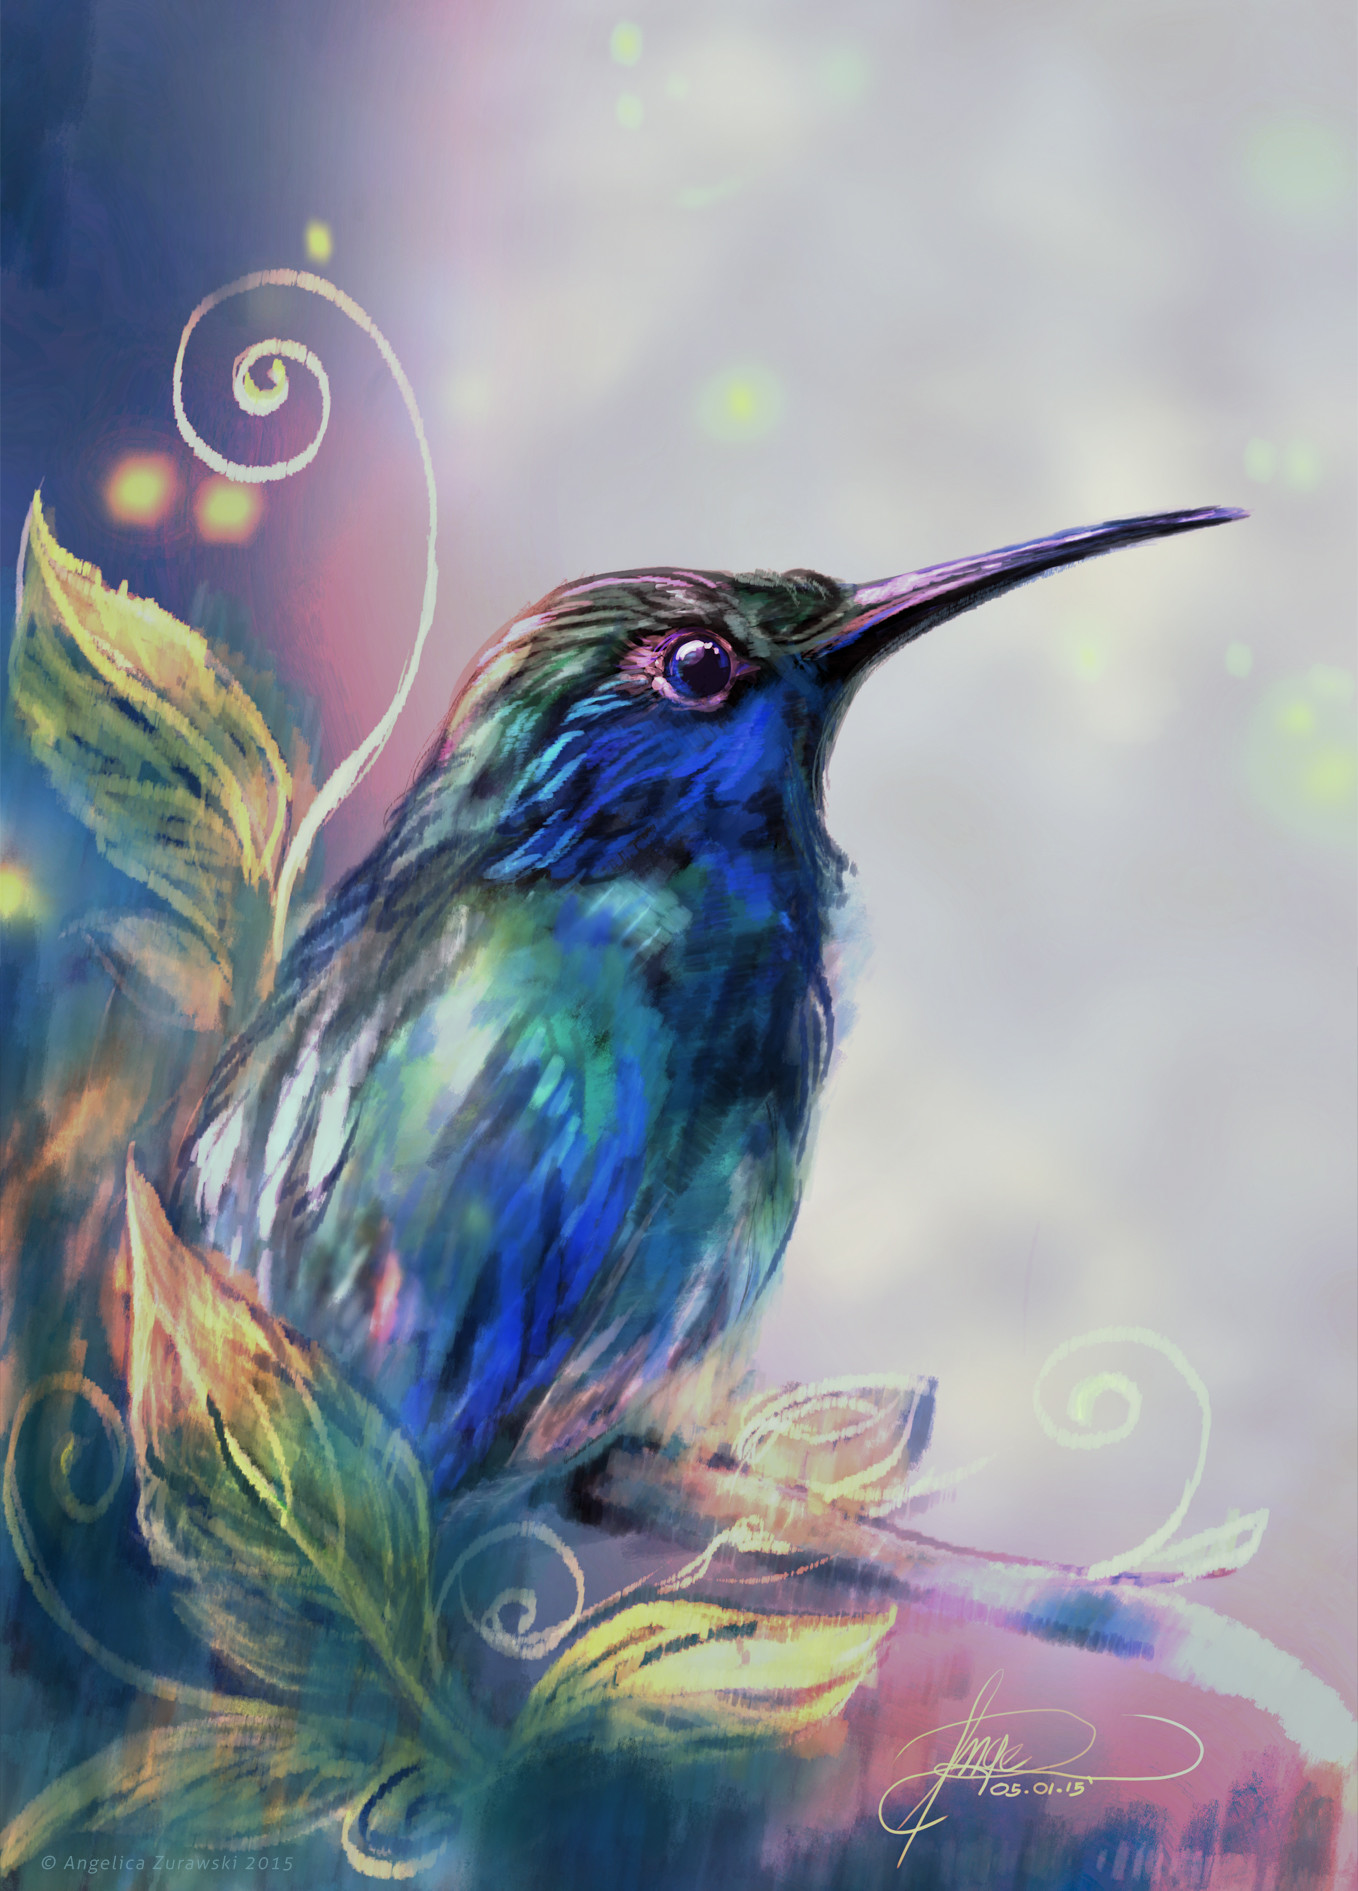 Angelica zurawski hummingbird2 by endzi z